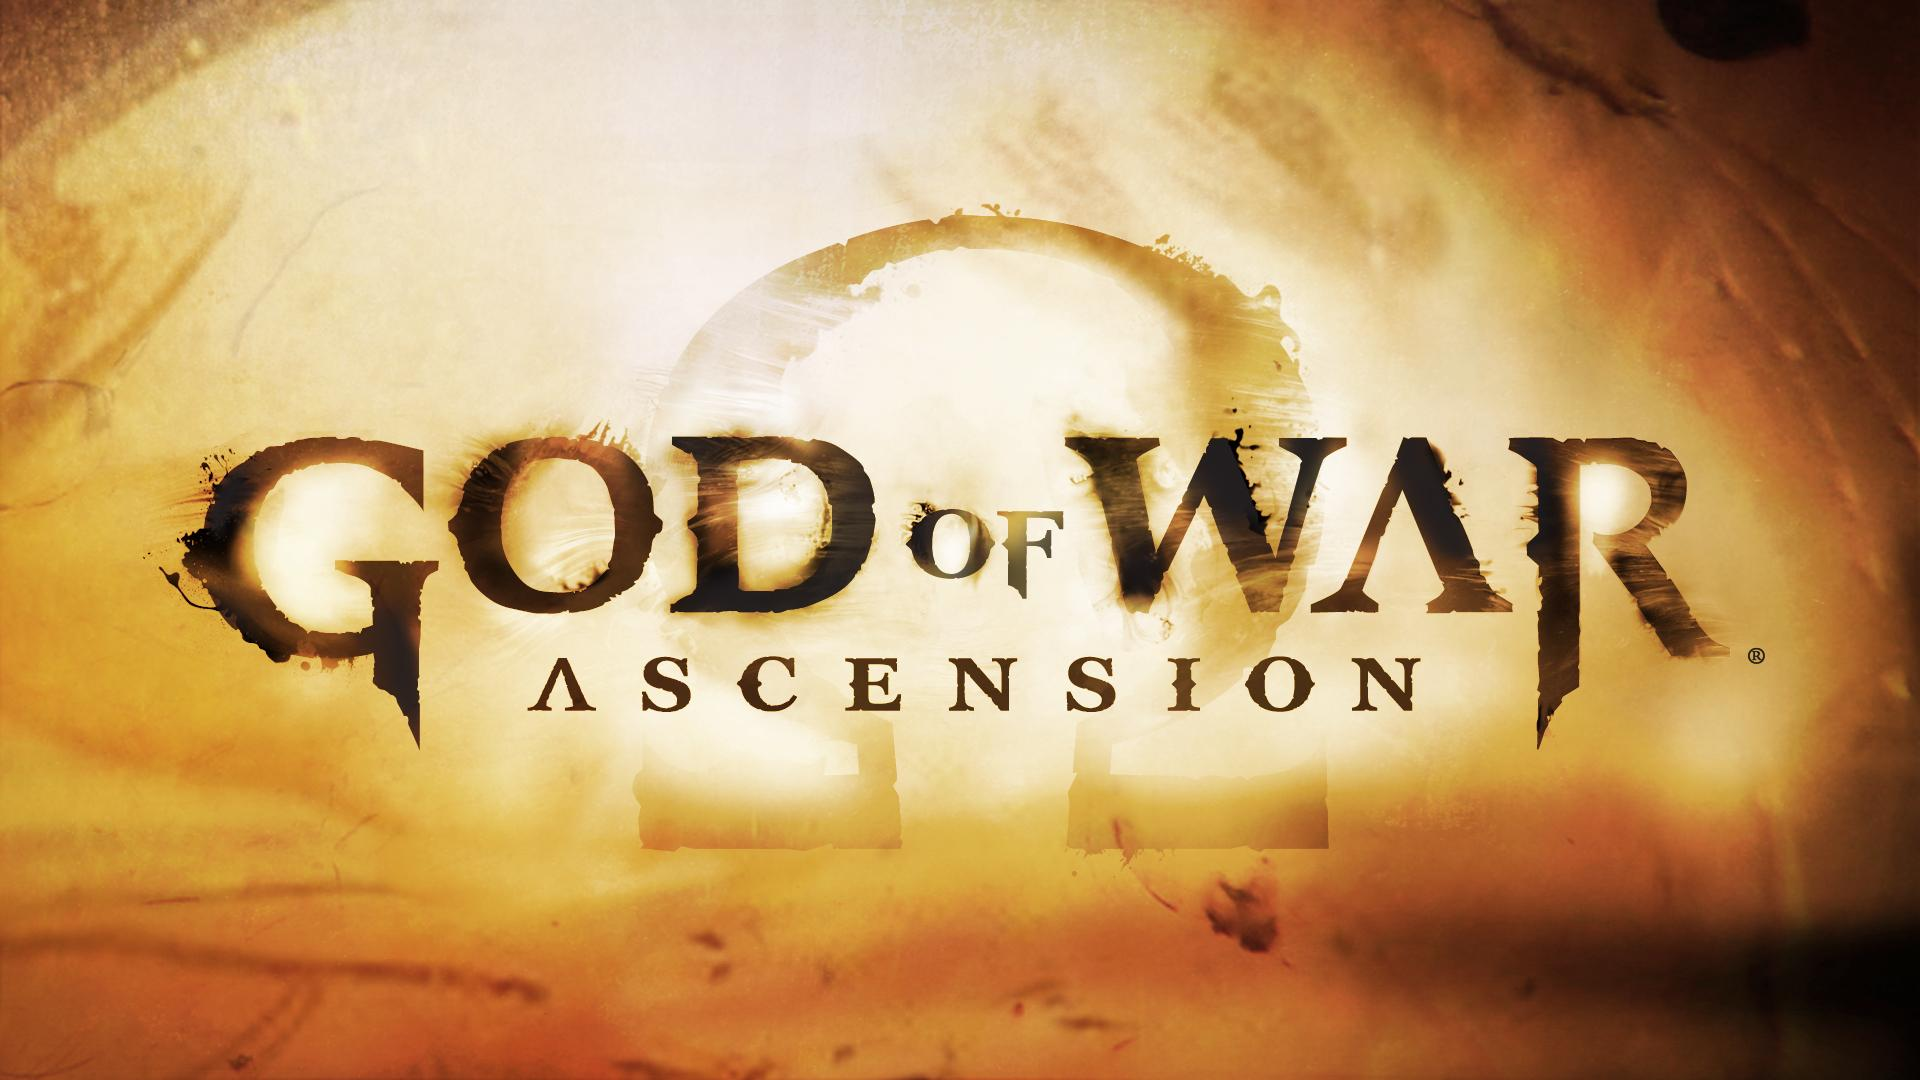 『God of War: Ascension』に『The Last of Us』の体験版が同梱